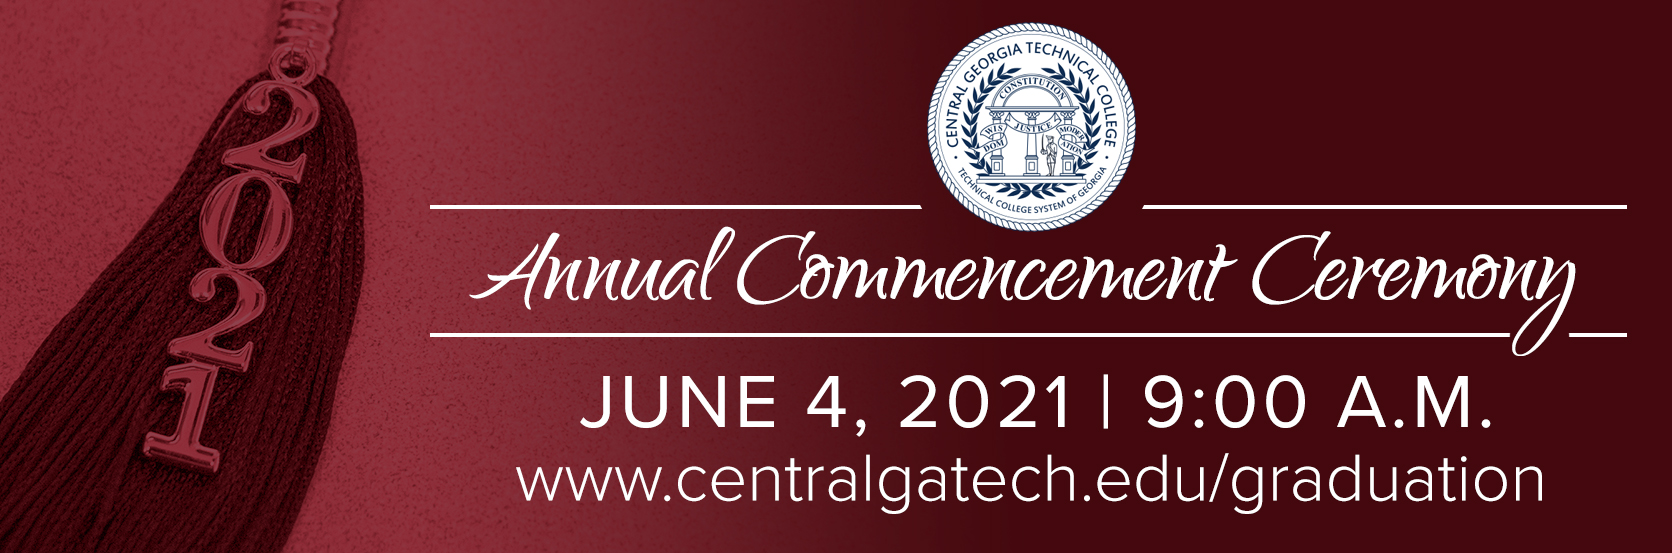 The 2021 CGTC Commencement Ceremony will take place June 4, 2021 at 9:00 a.m..Click for more information..